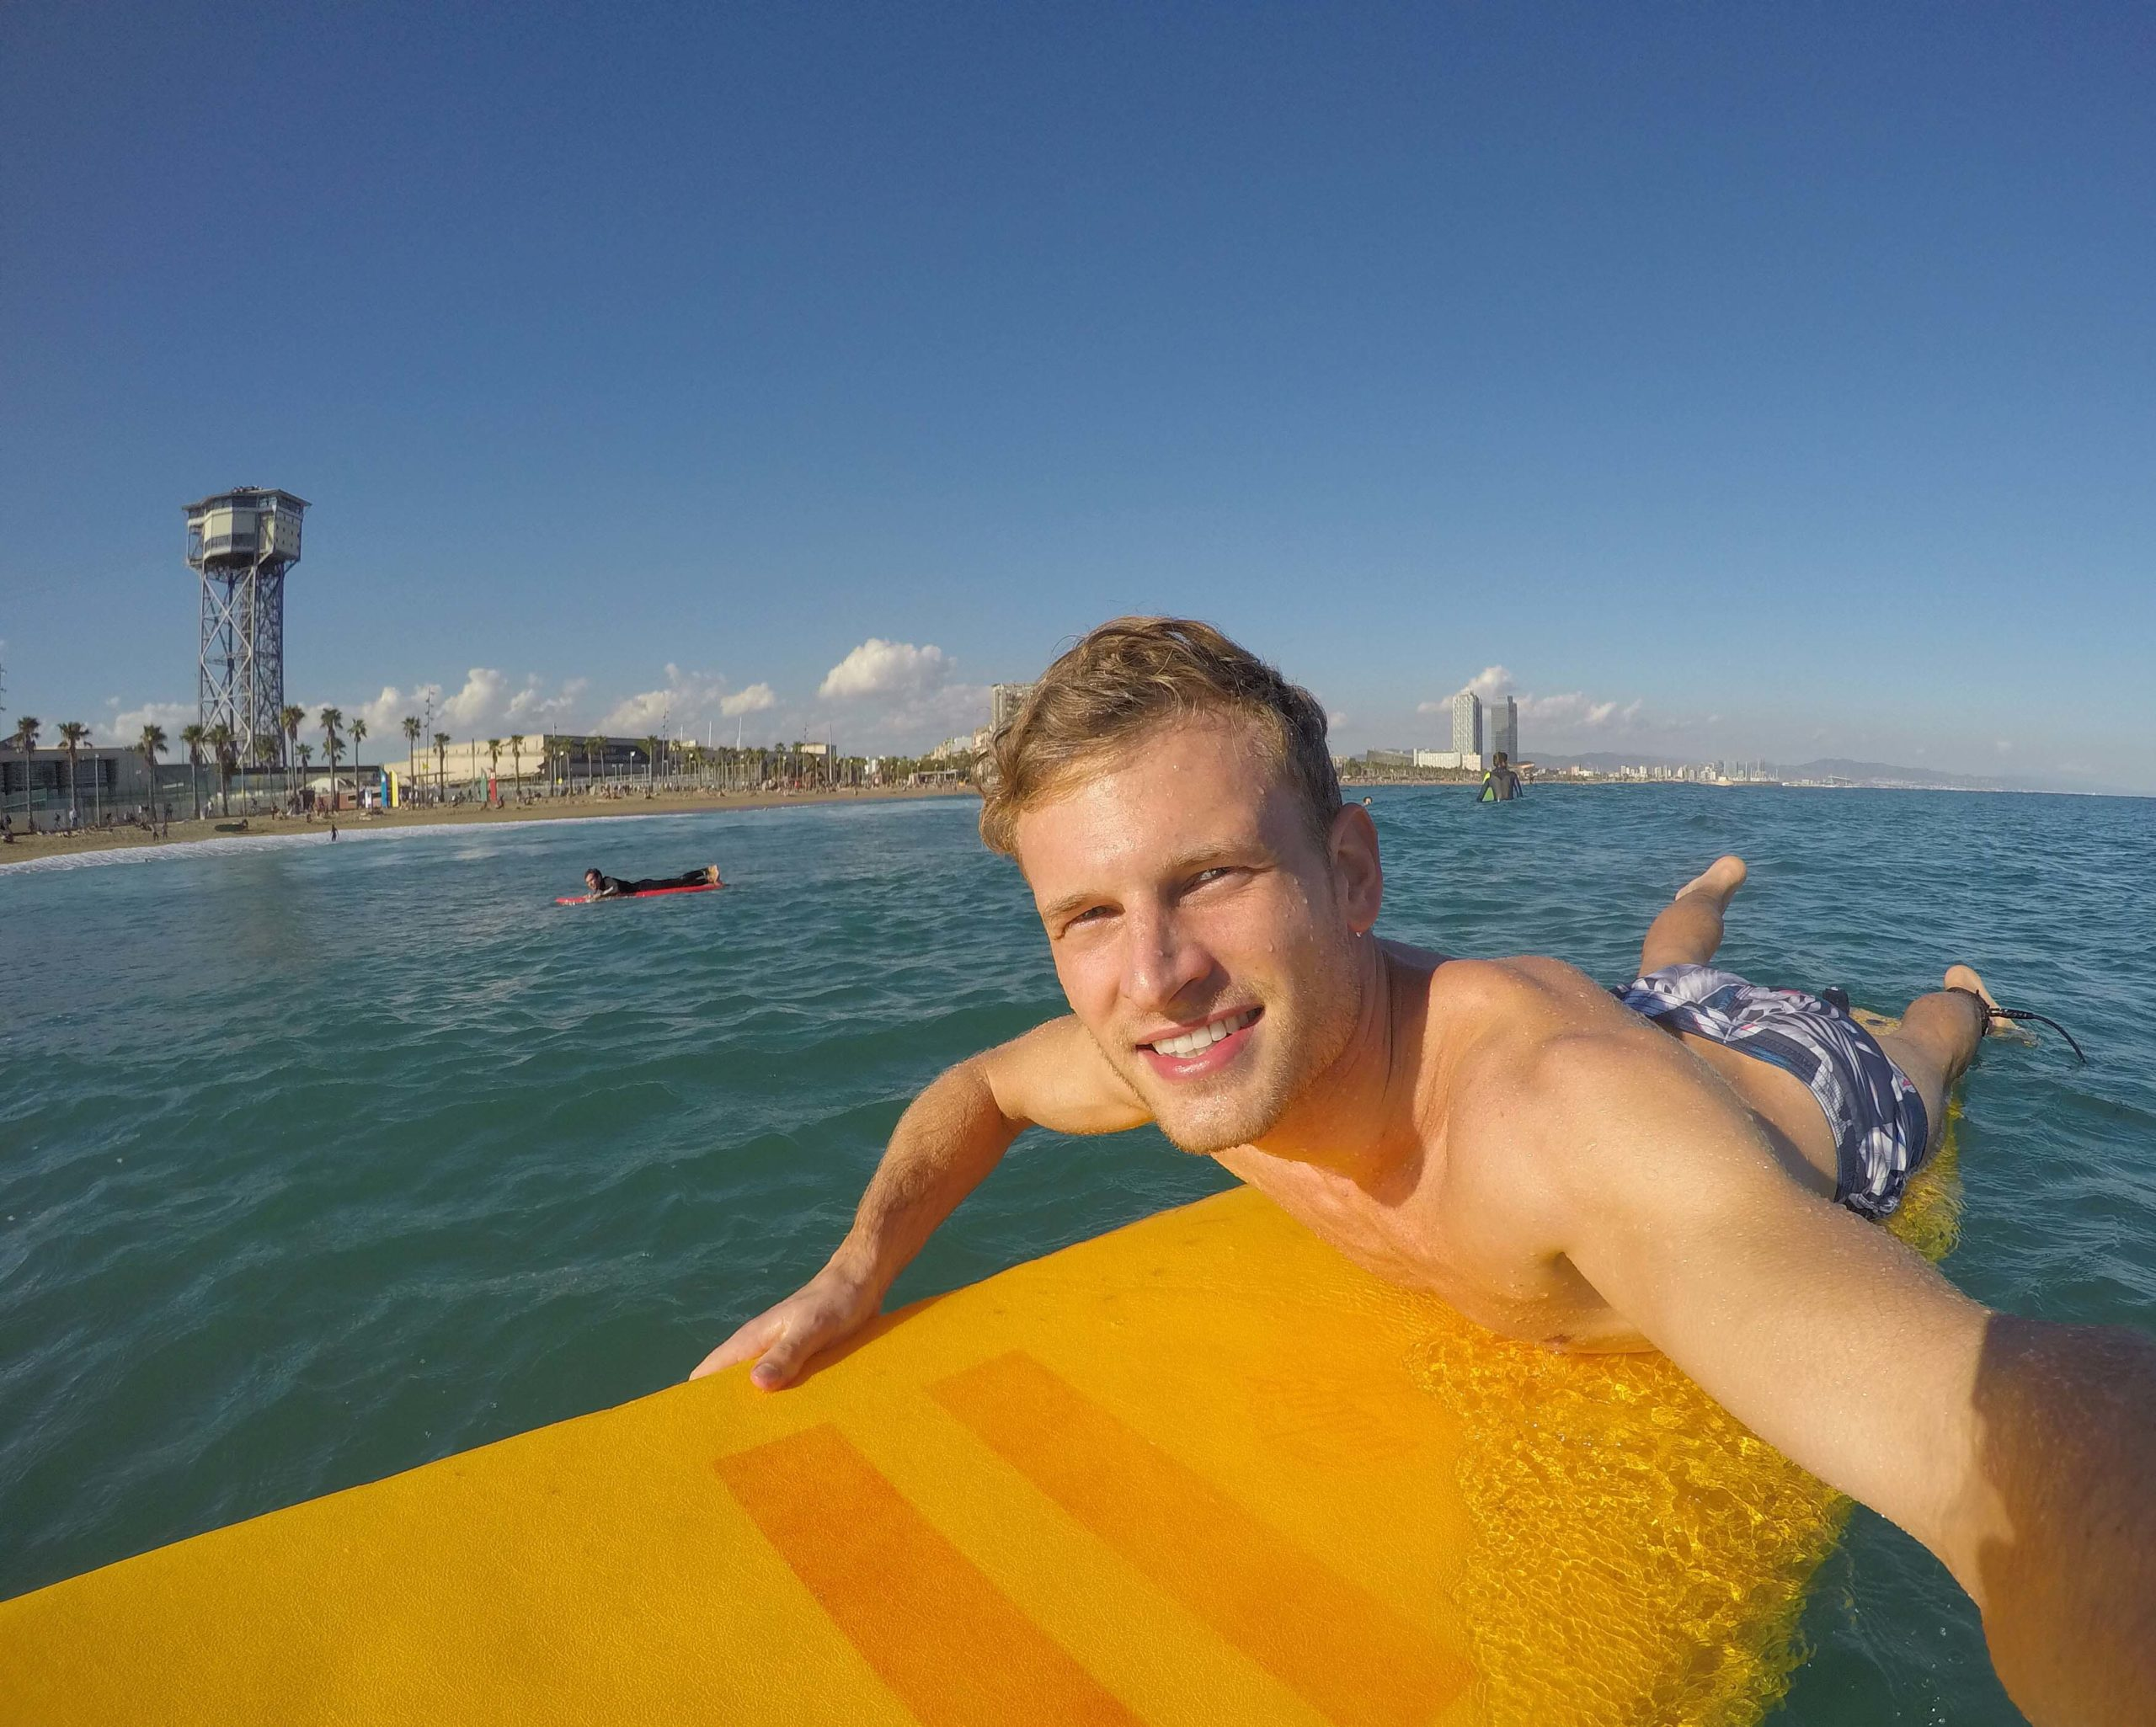 pilot patrick surfing in Barcelona